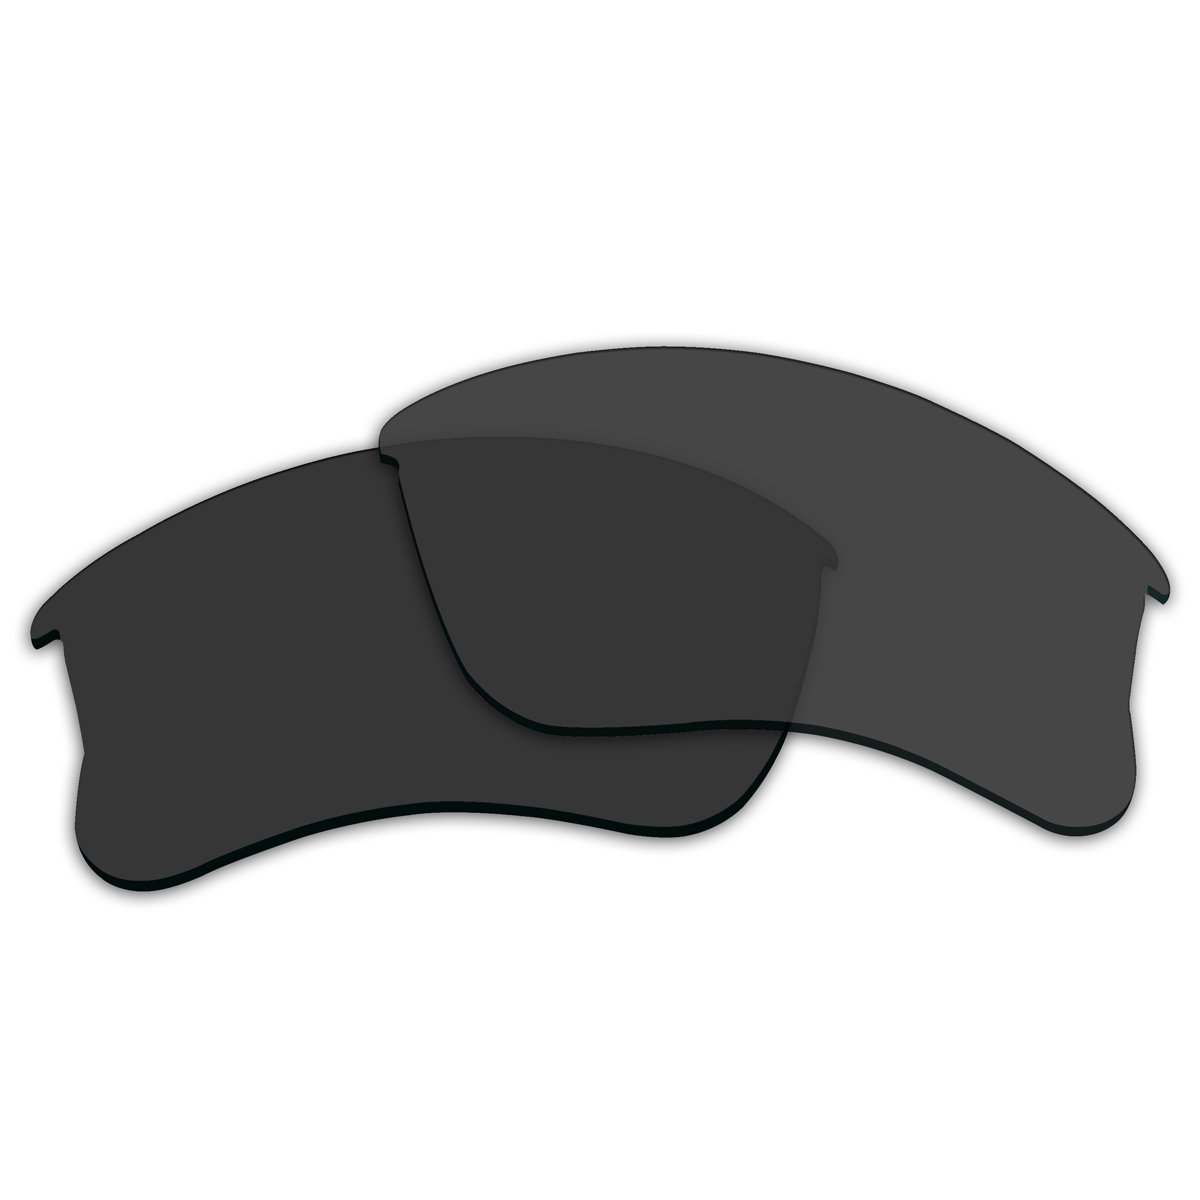 ACOMPATIBLE Replacement Lenses for Oakley Flak Jacket XLJ Sunglasses